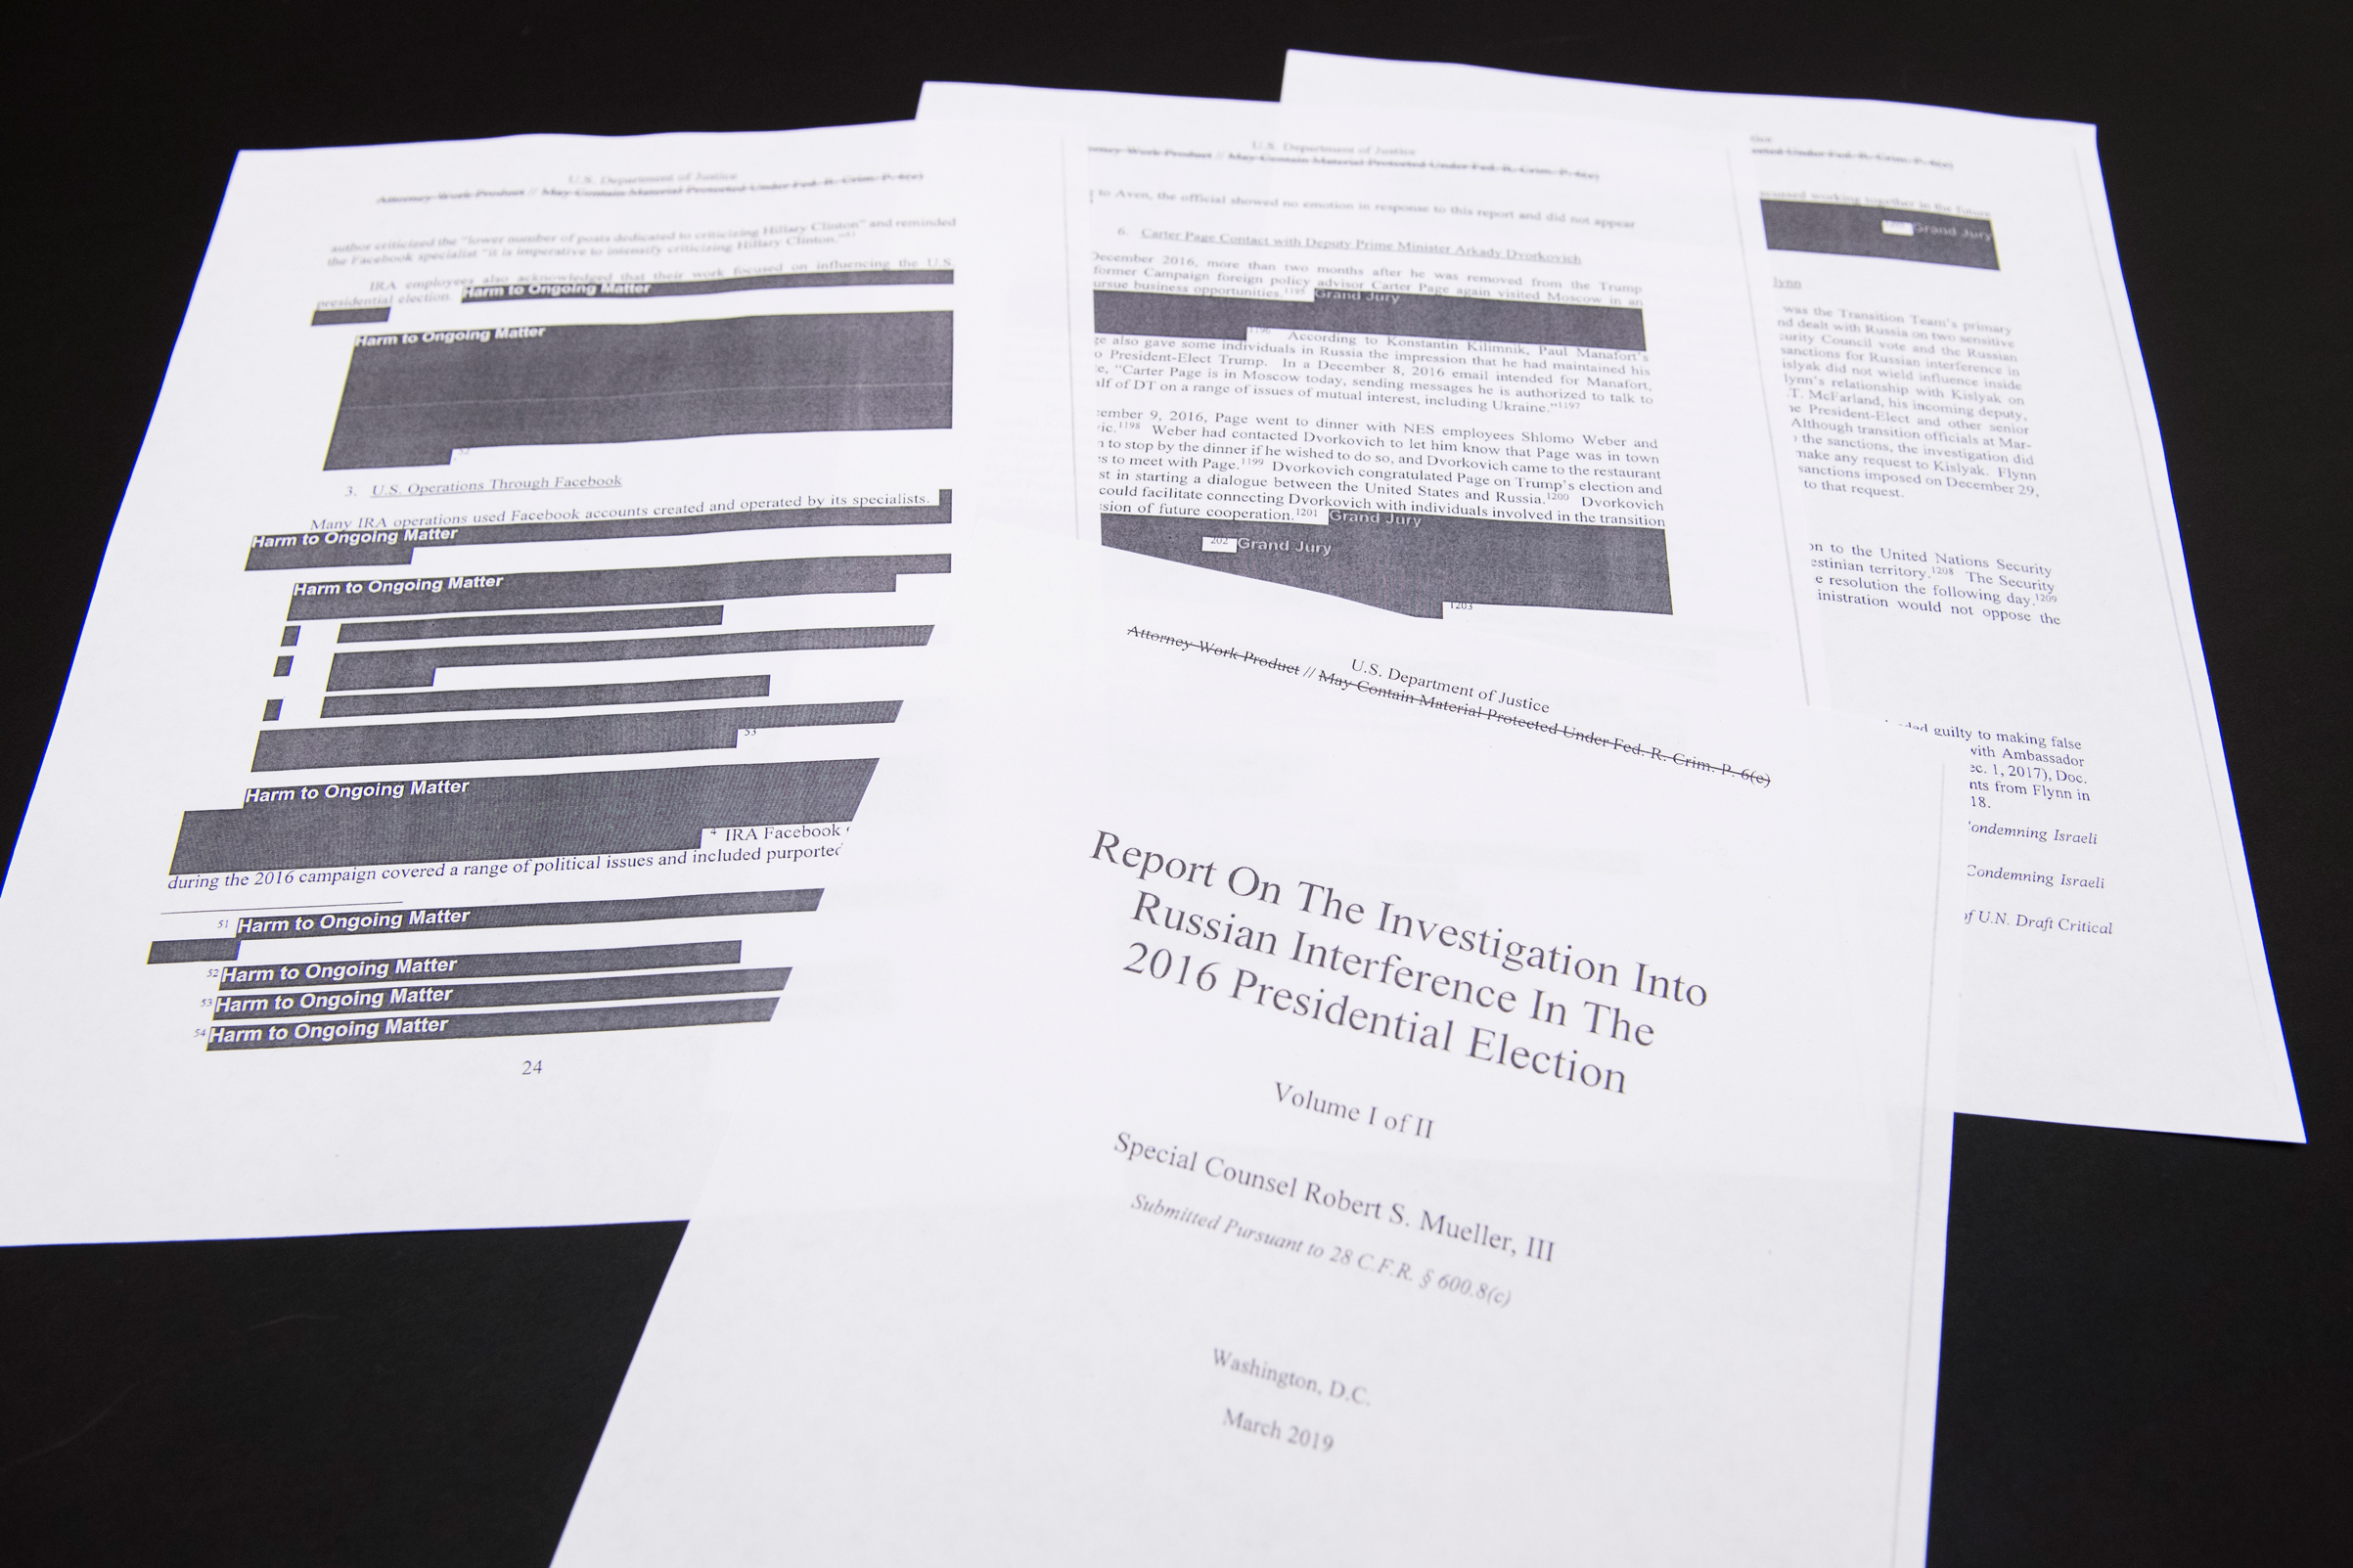 A few pages of Special Counsel Robert Mueller's report on Russian interference in the 2016 election that were printed out by staff in the House Judiciary Committee's hearing room on April 18, 2019.